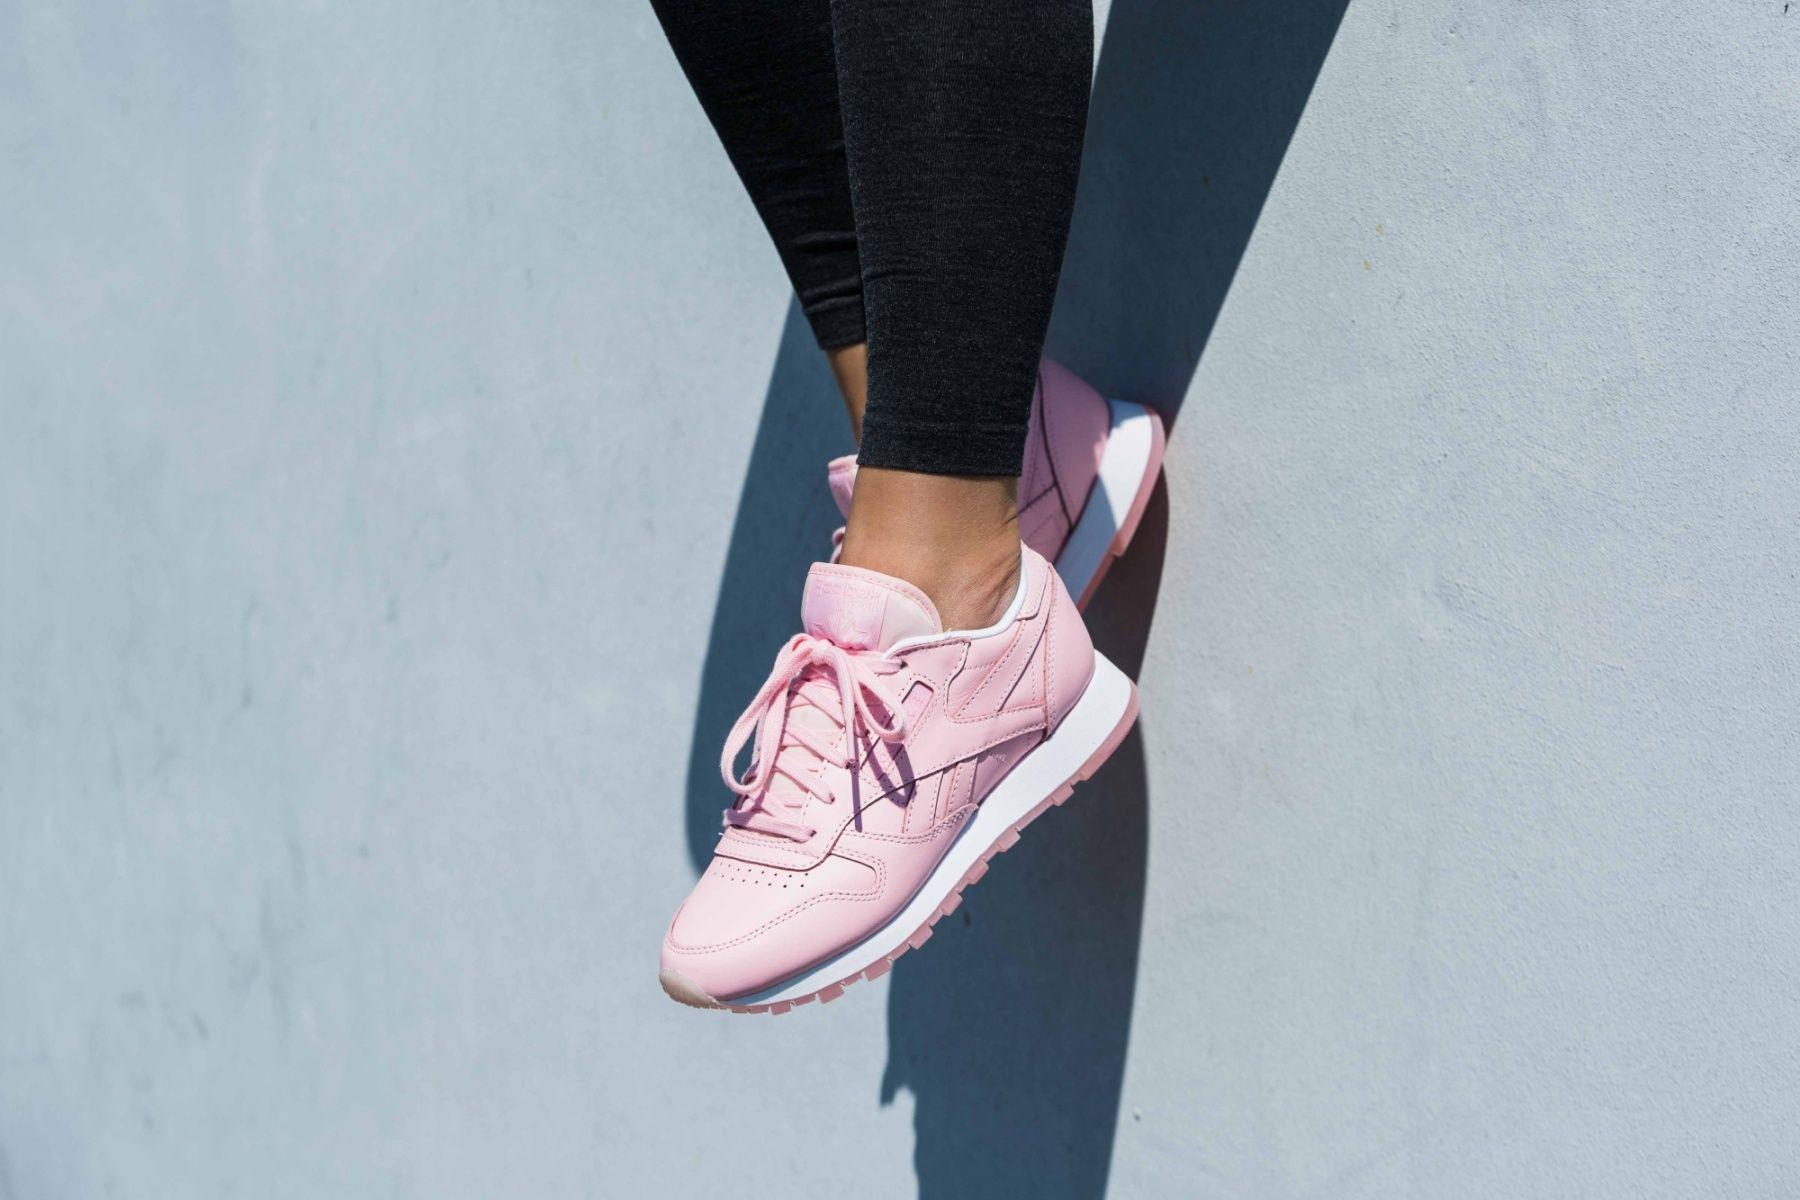 Reebok CL Leather X Face Stockholm BD1327 Womens Trainers in